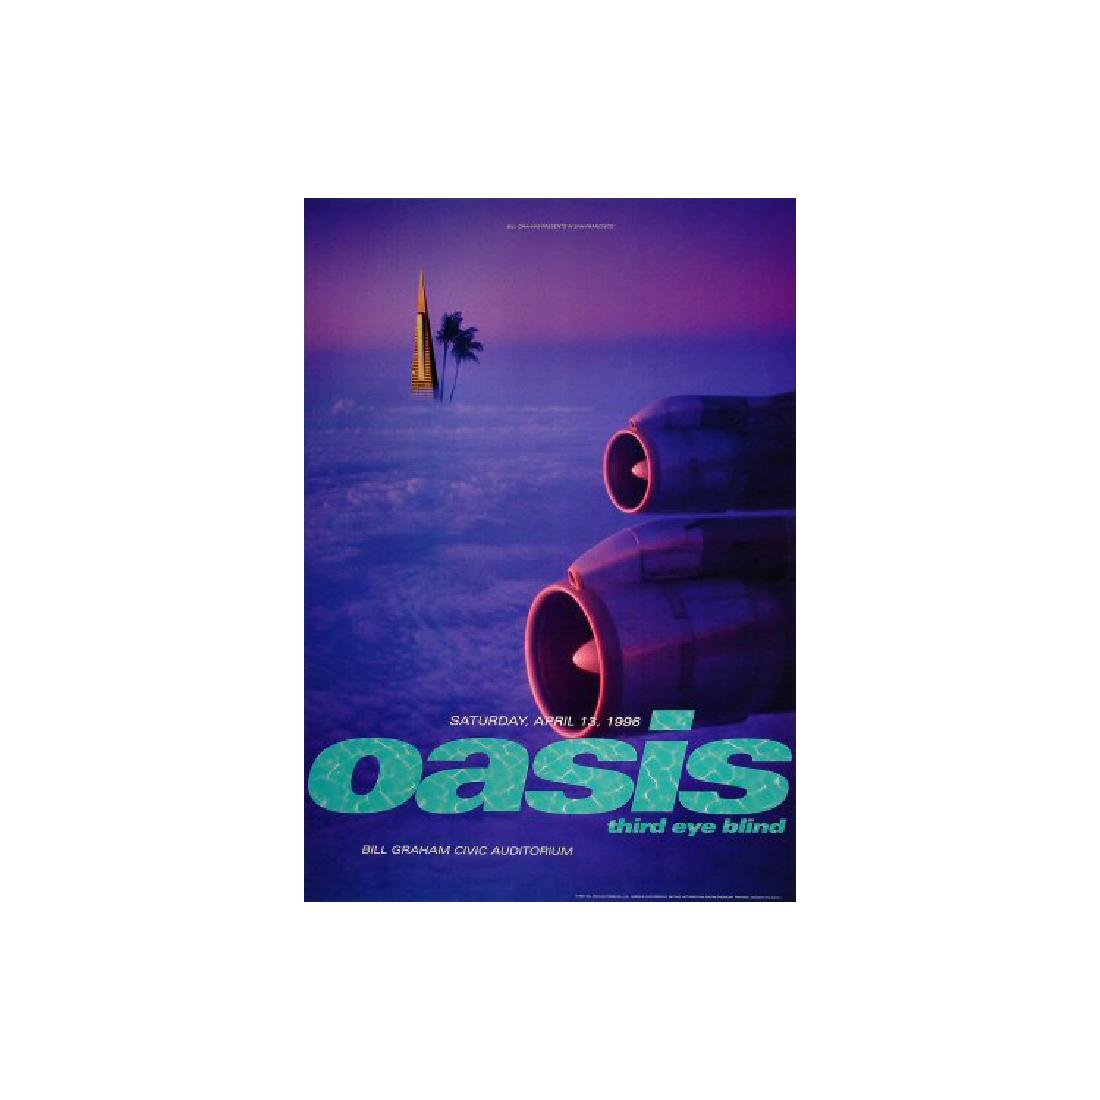 Oasis - 1996 Concert Poster